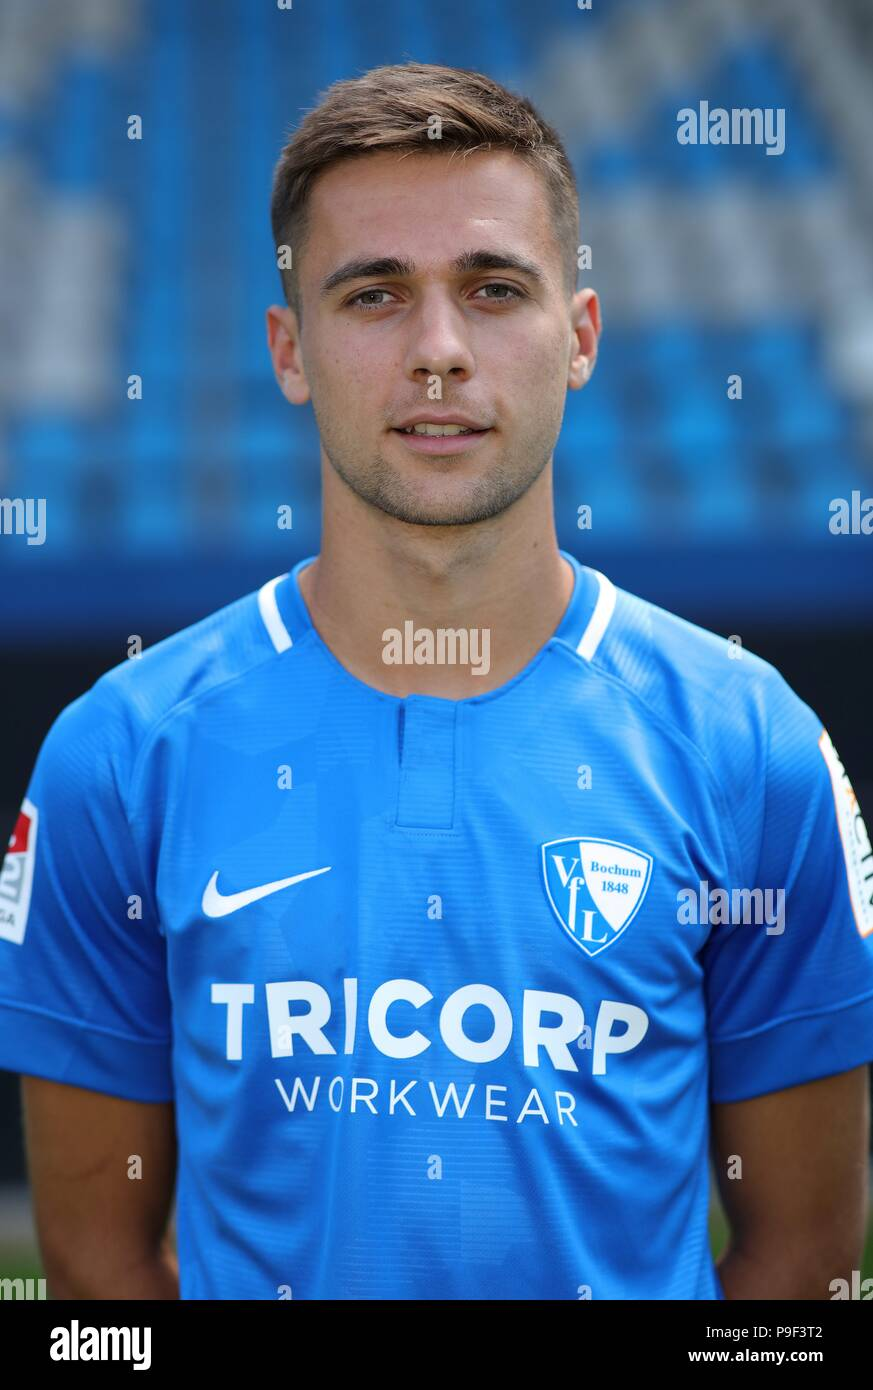 firo: 17.07.2018, football, 2.Bundesliga, season 2018/2019, VfL Bochum, photo shoot, portrait, portrait, Milos PANTOVIC, | usage worldwide - Stock Image